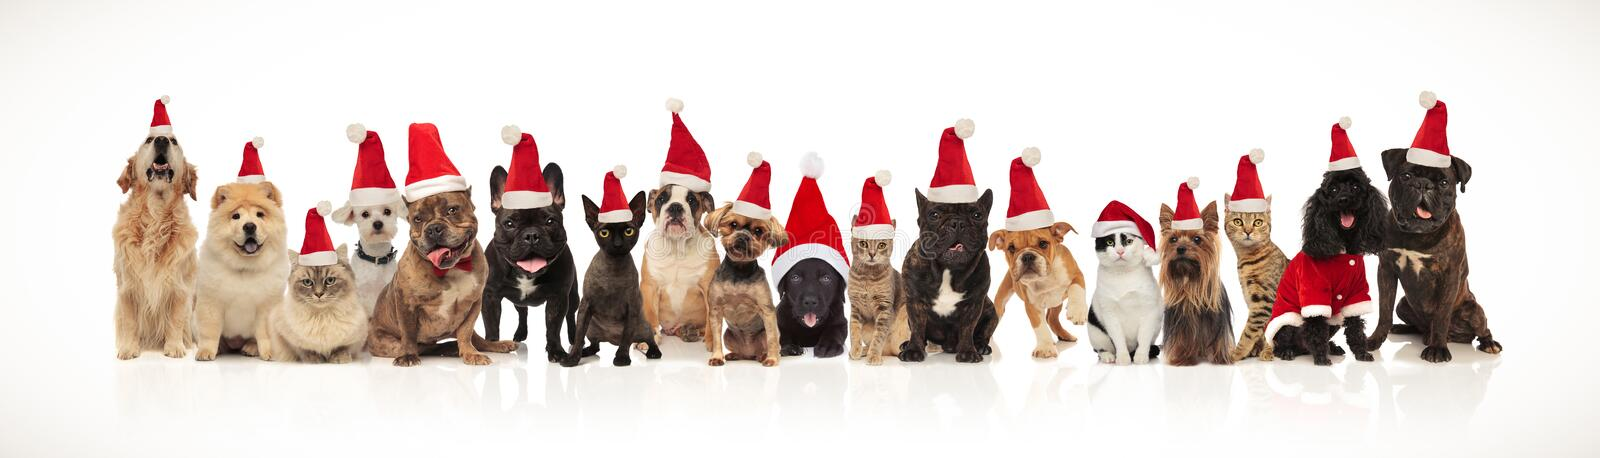 Large group of adorable cats and dogs with santa hats royalty free stock images